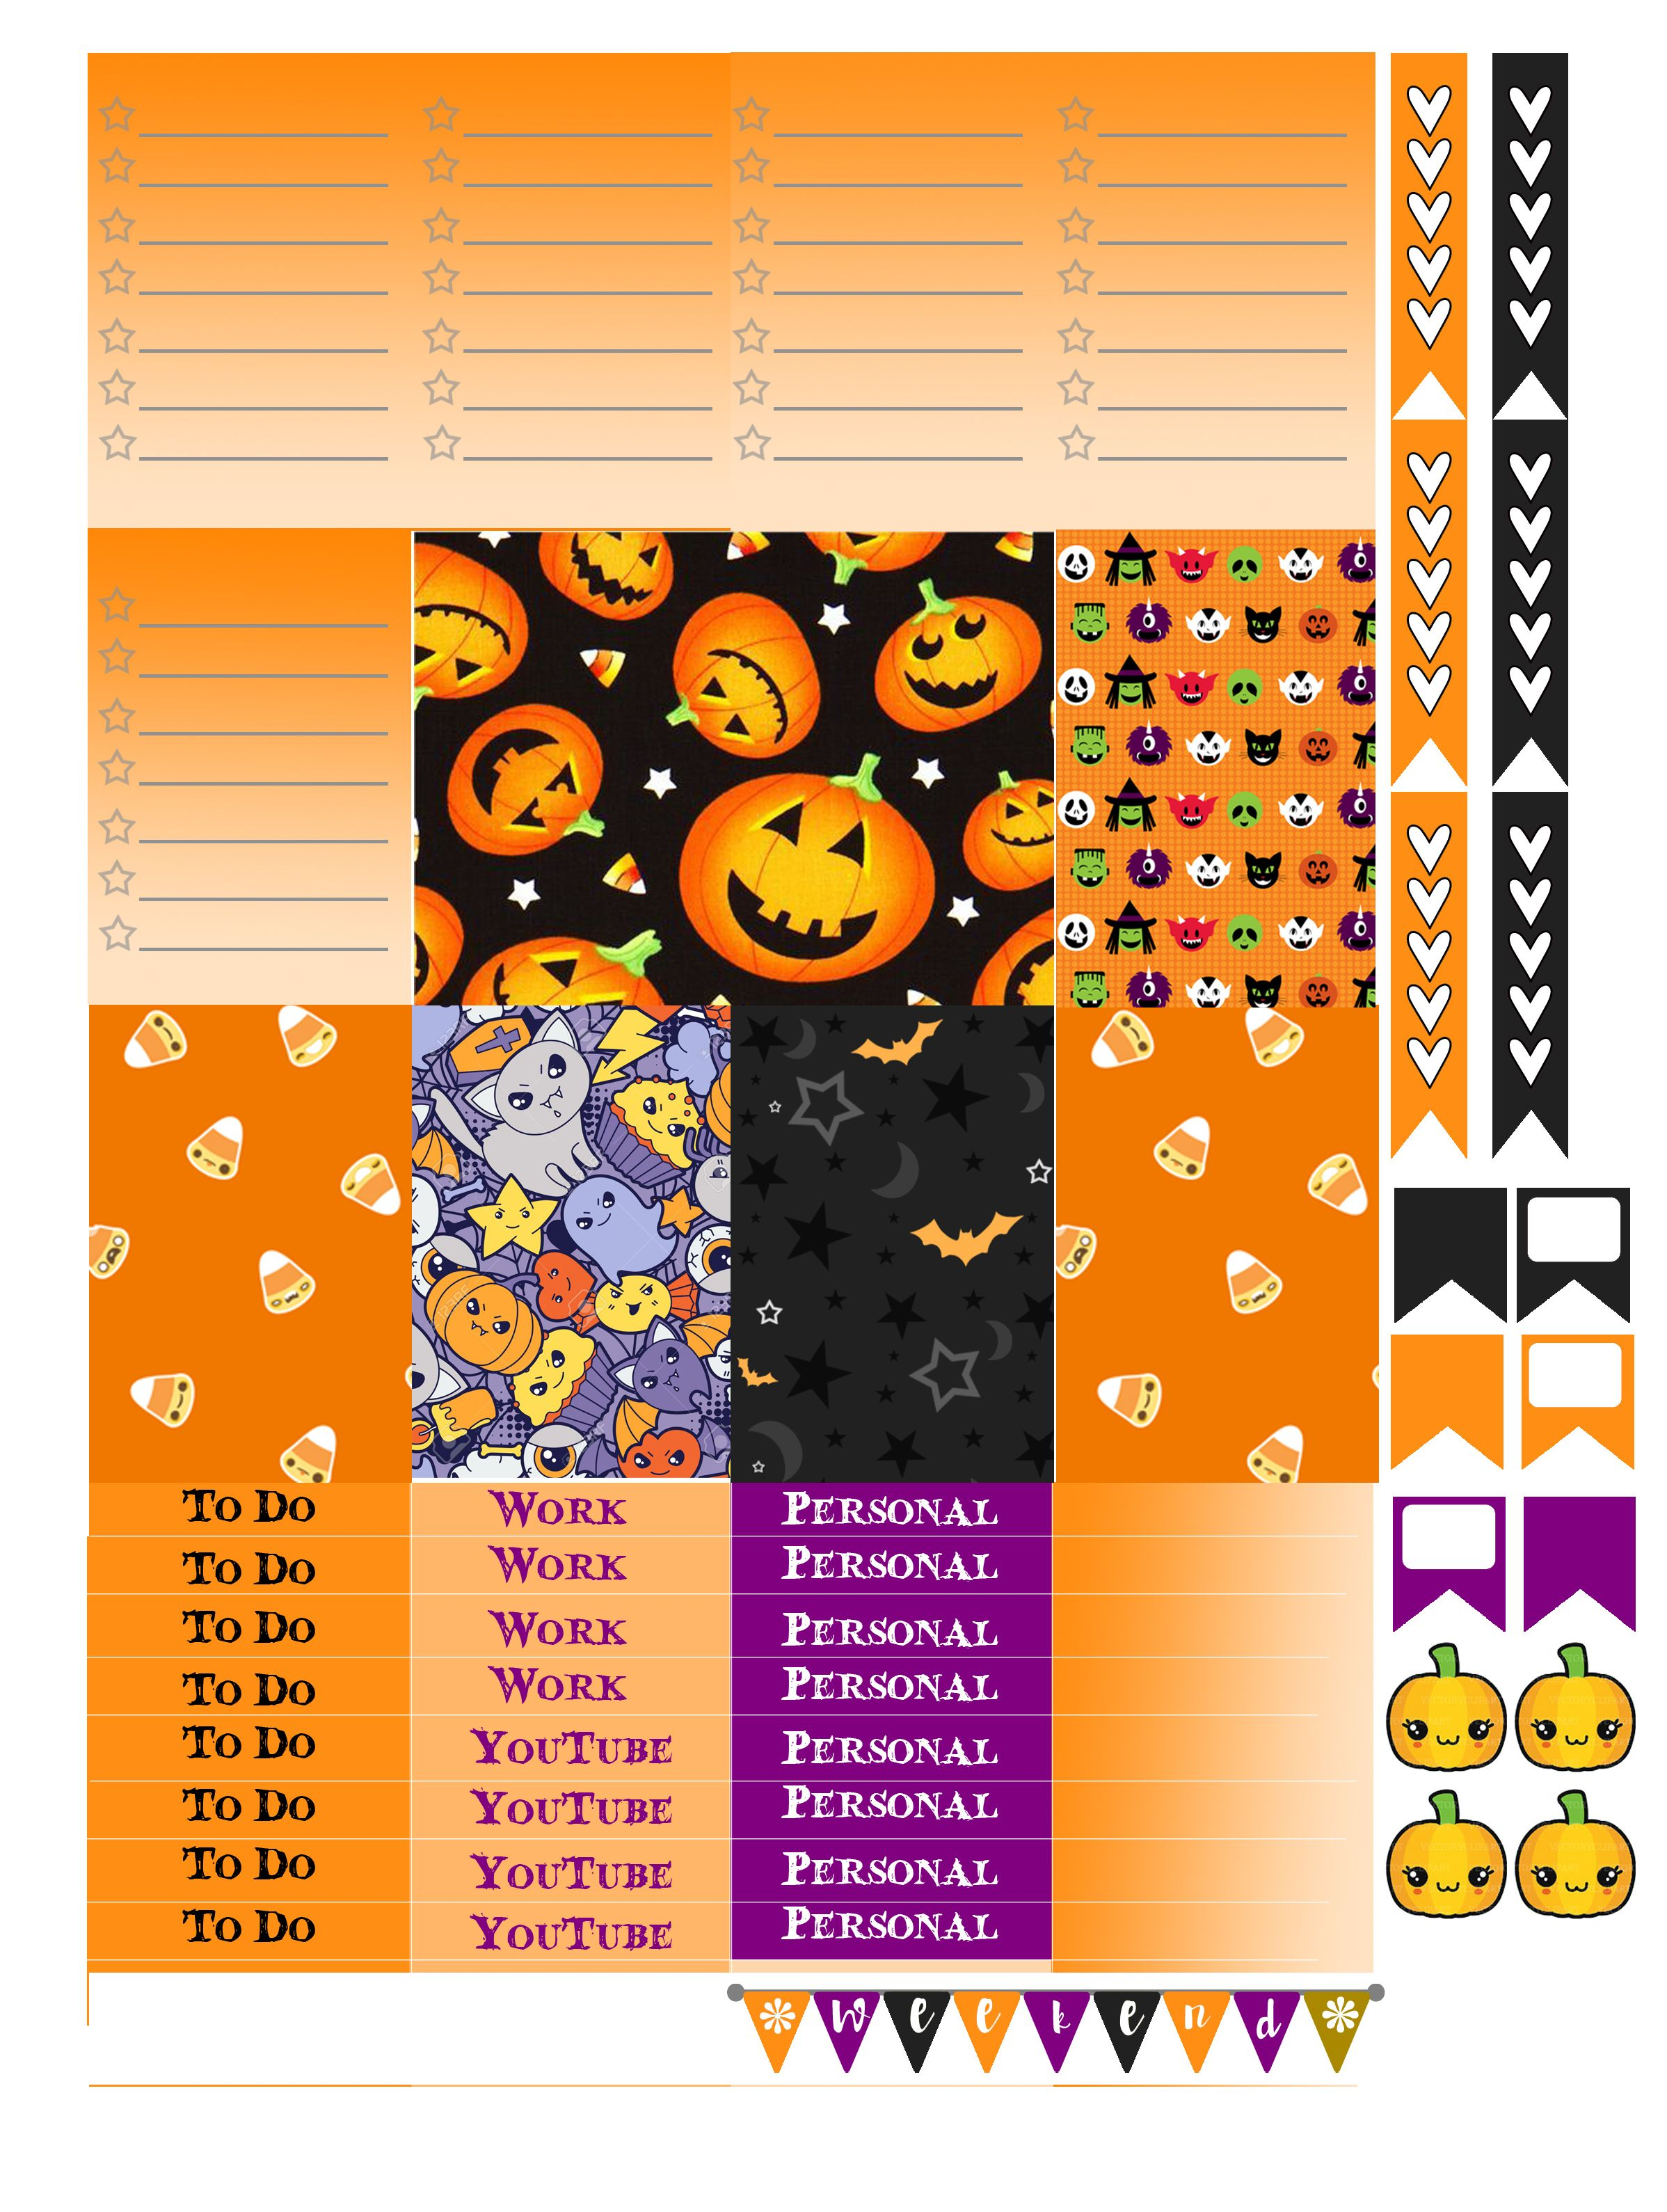 Free thp the happy planner by mambi sticker free printable sticker layout may be subject to copyright not intended for retail personal use only